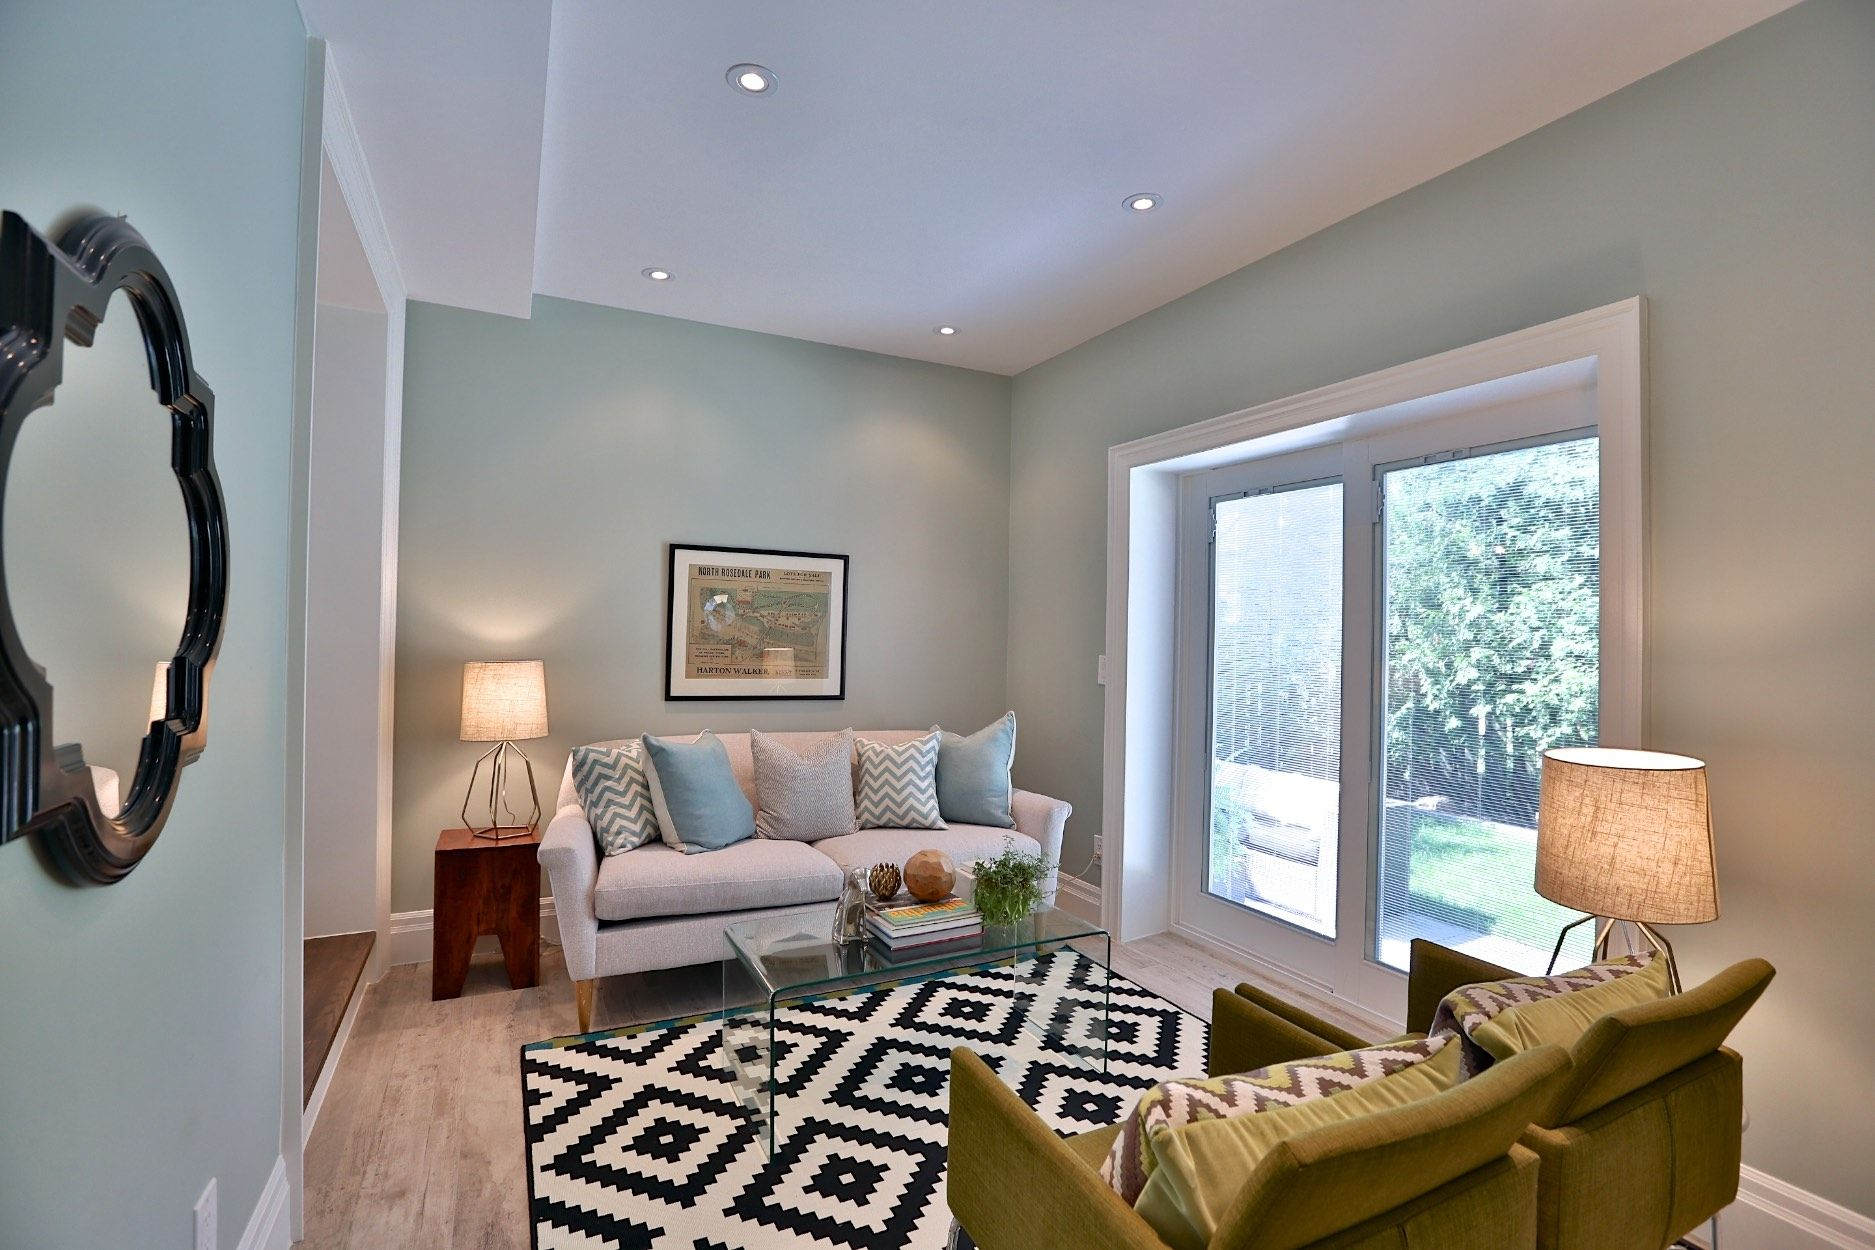 MH Thompson Home Home Staging Decoration Interior Design